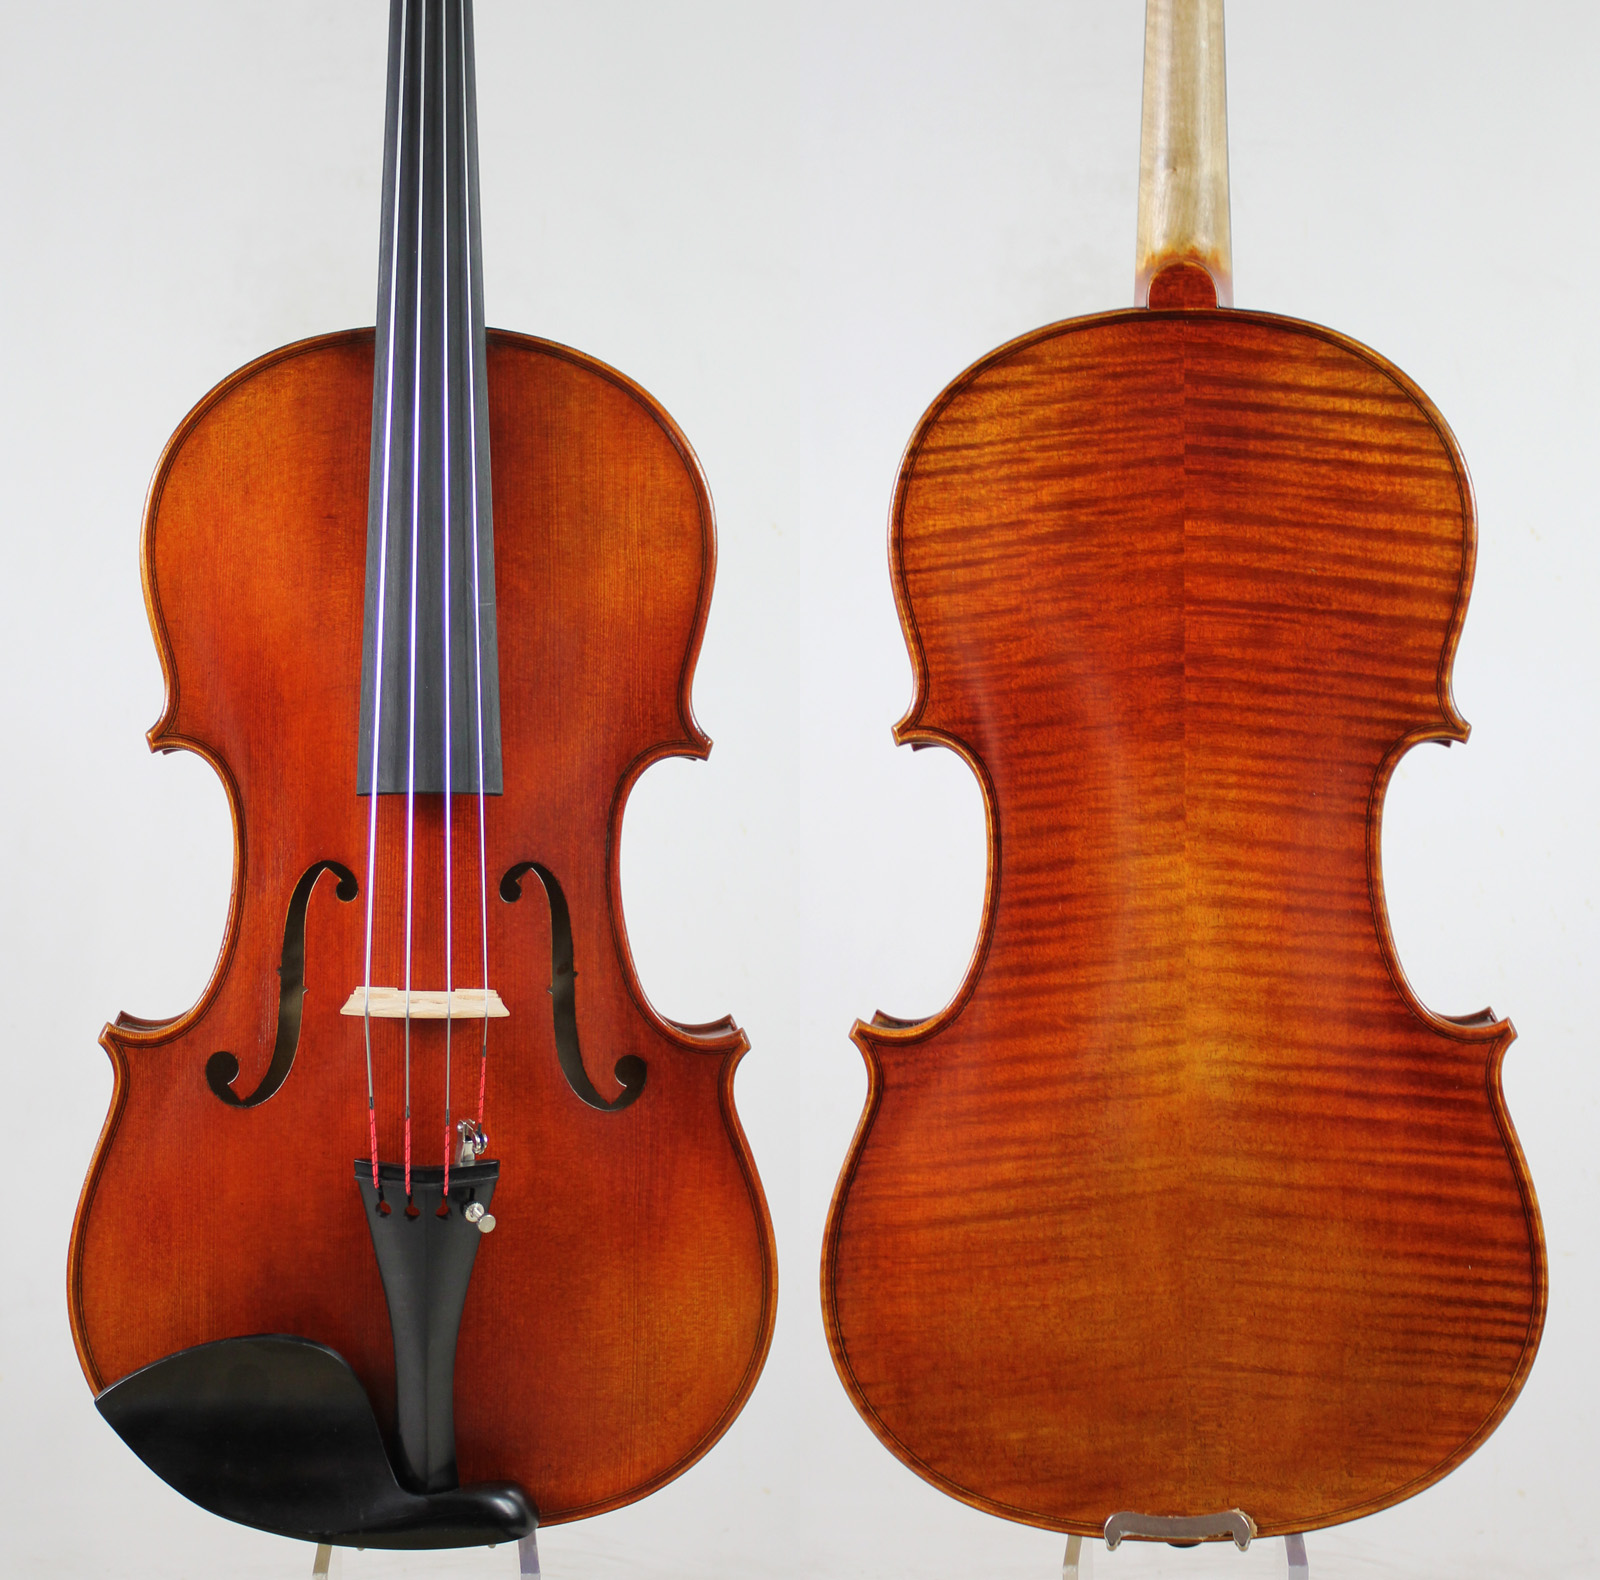 Special offer! A Professional Viola,15.5 inch Choice, Oil Varnish, Warm Deep Tone!European Wood,Free Shipping!!!